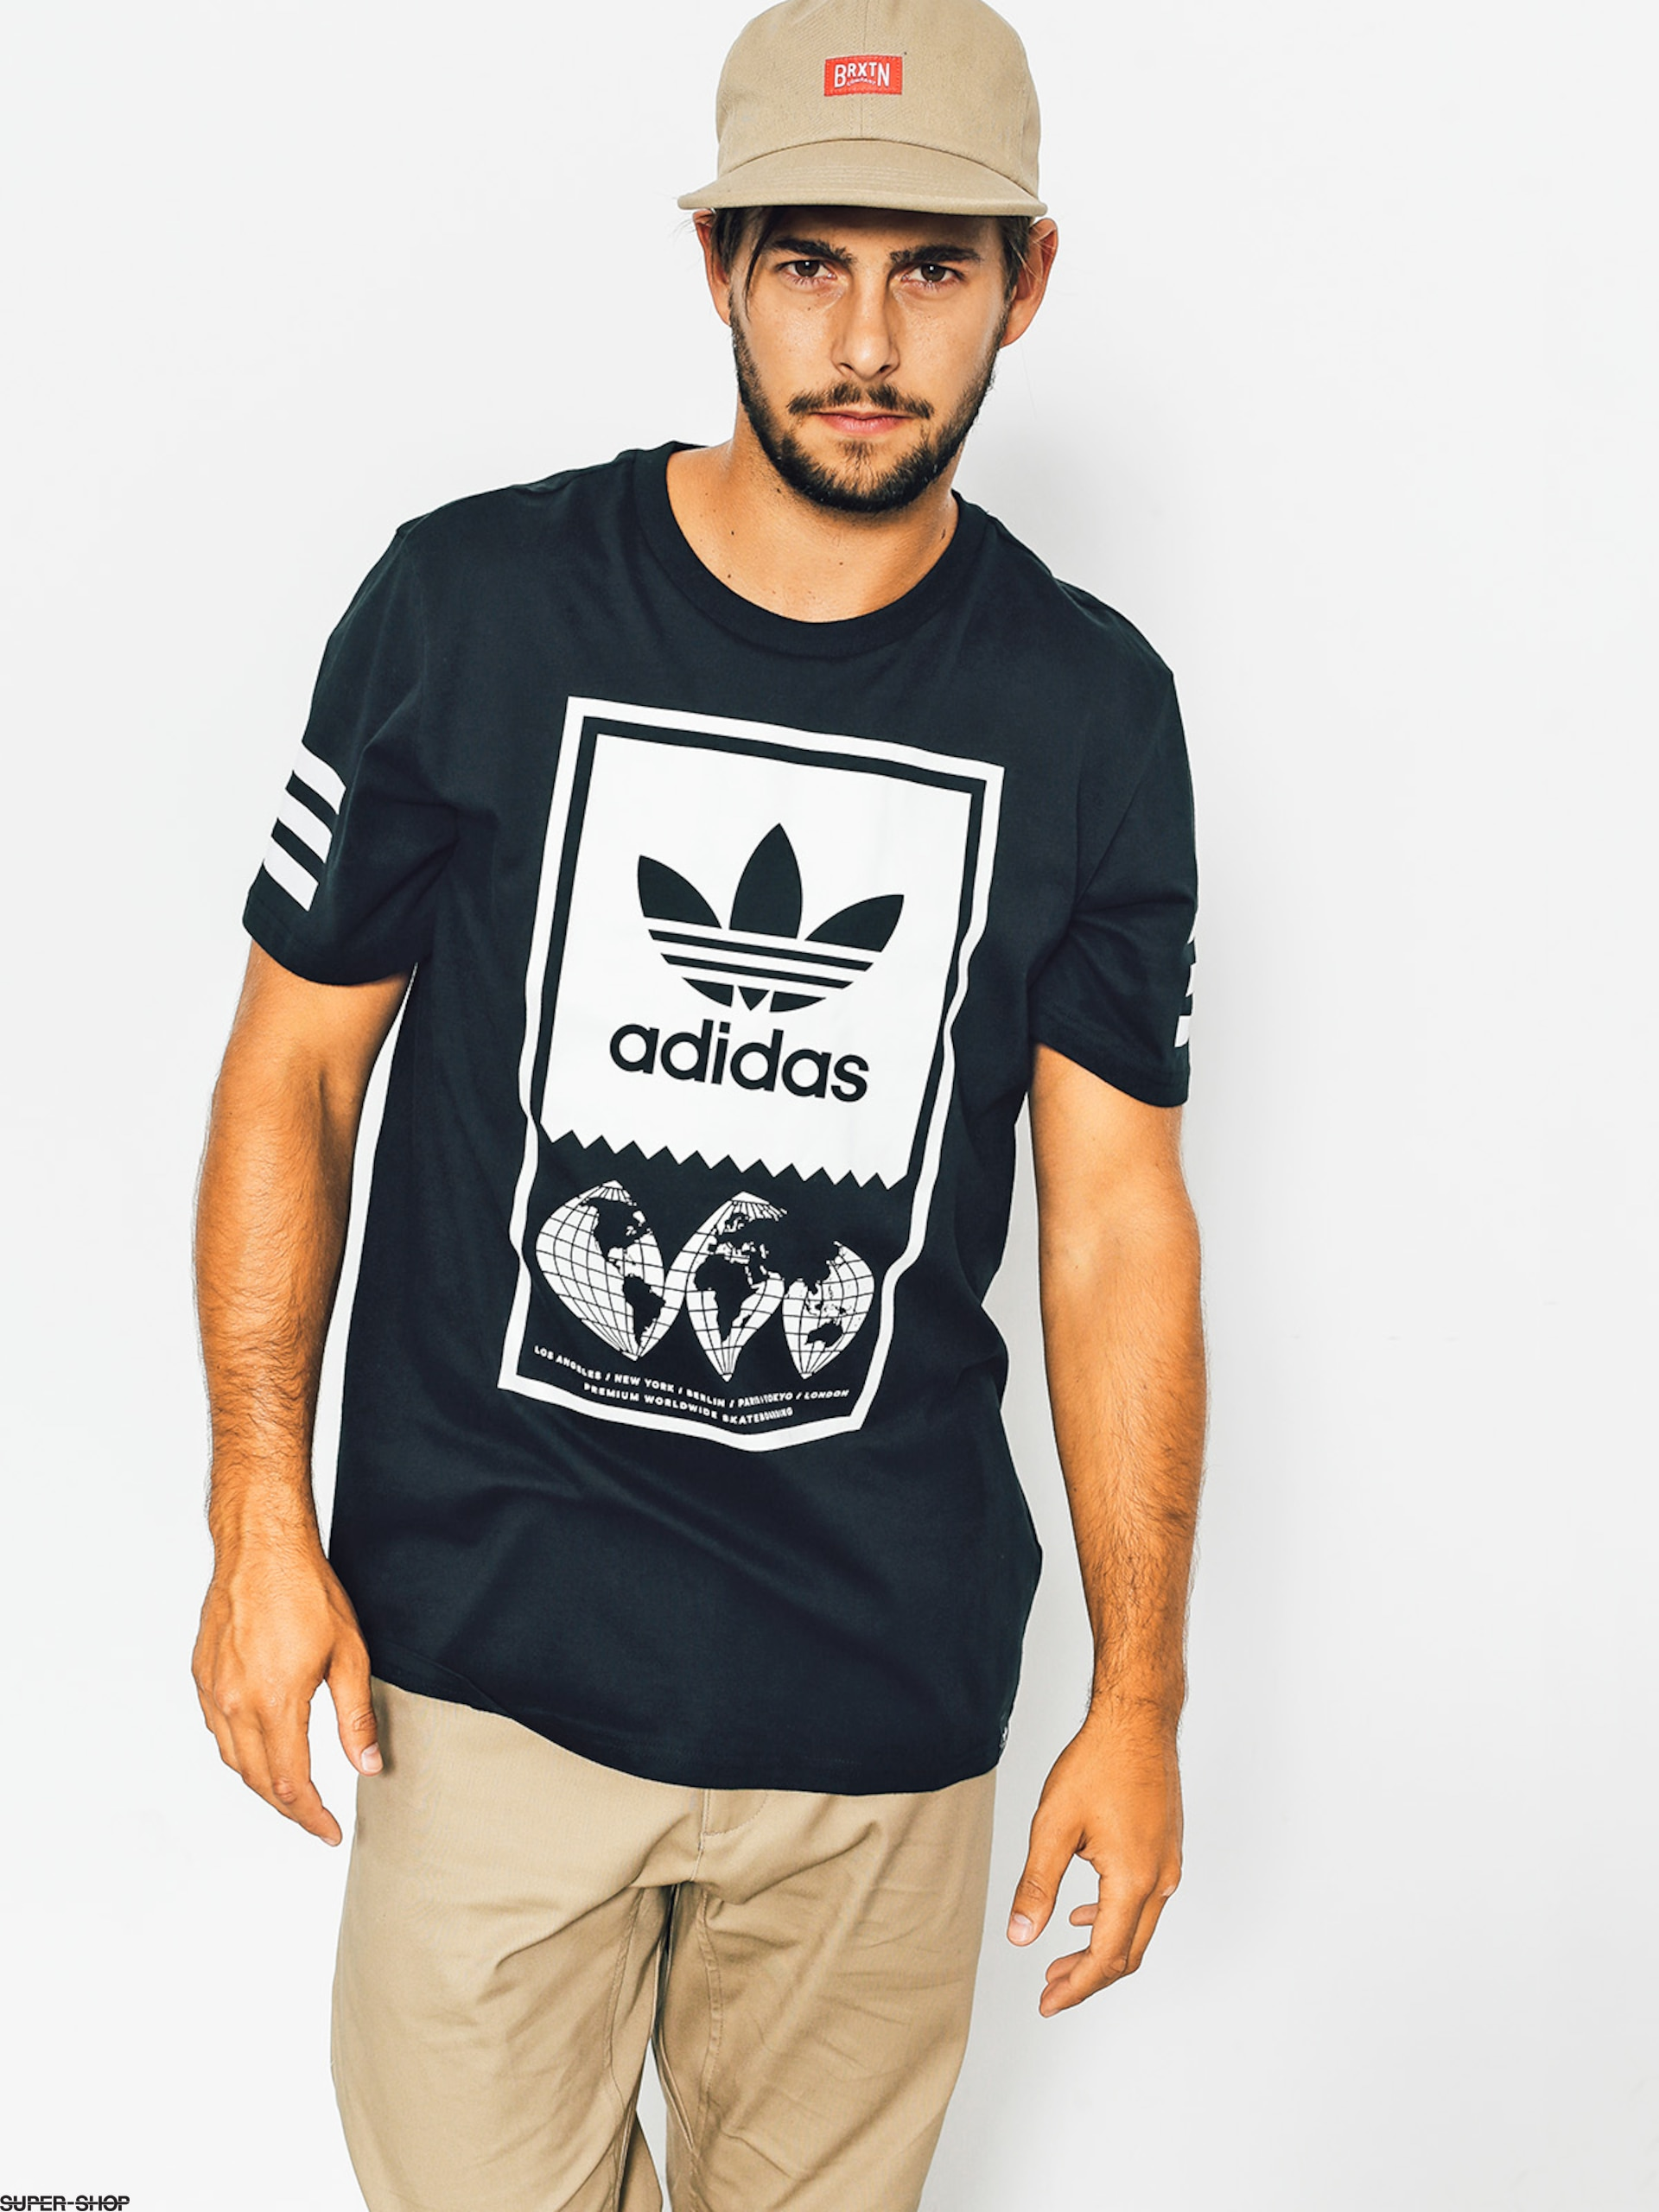 adidas T-shirt Global Lckup (black/white)